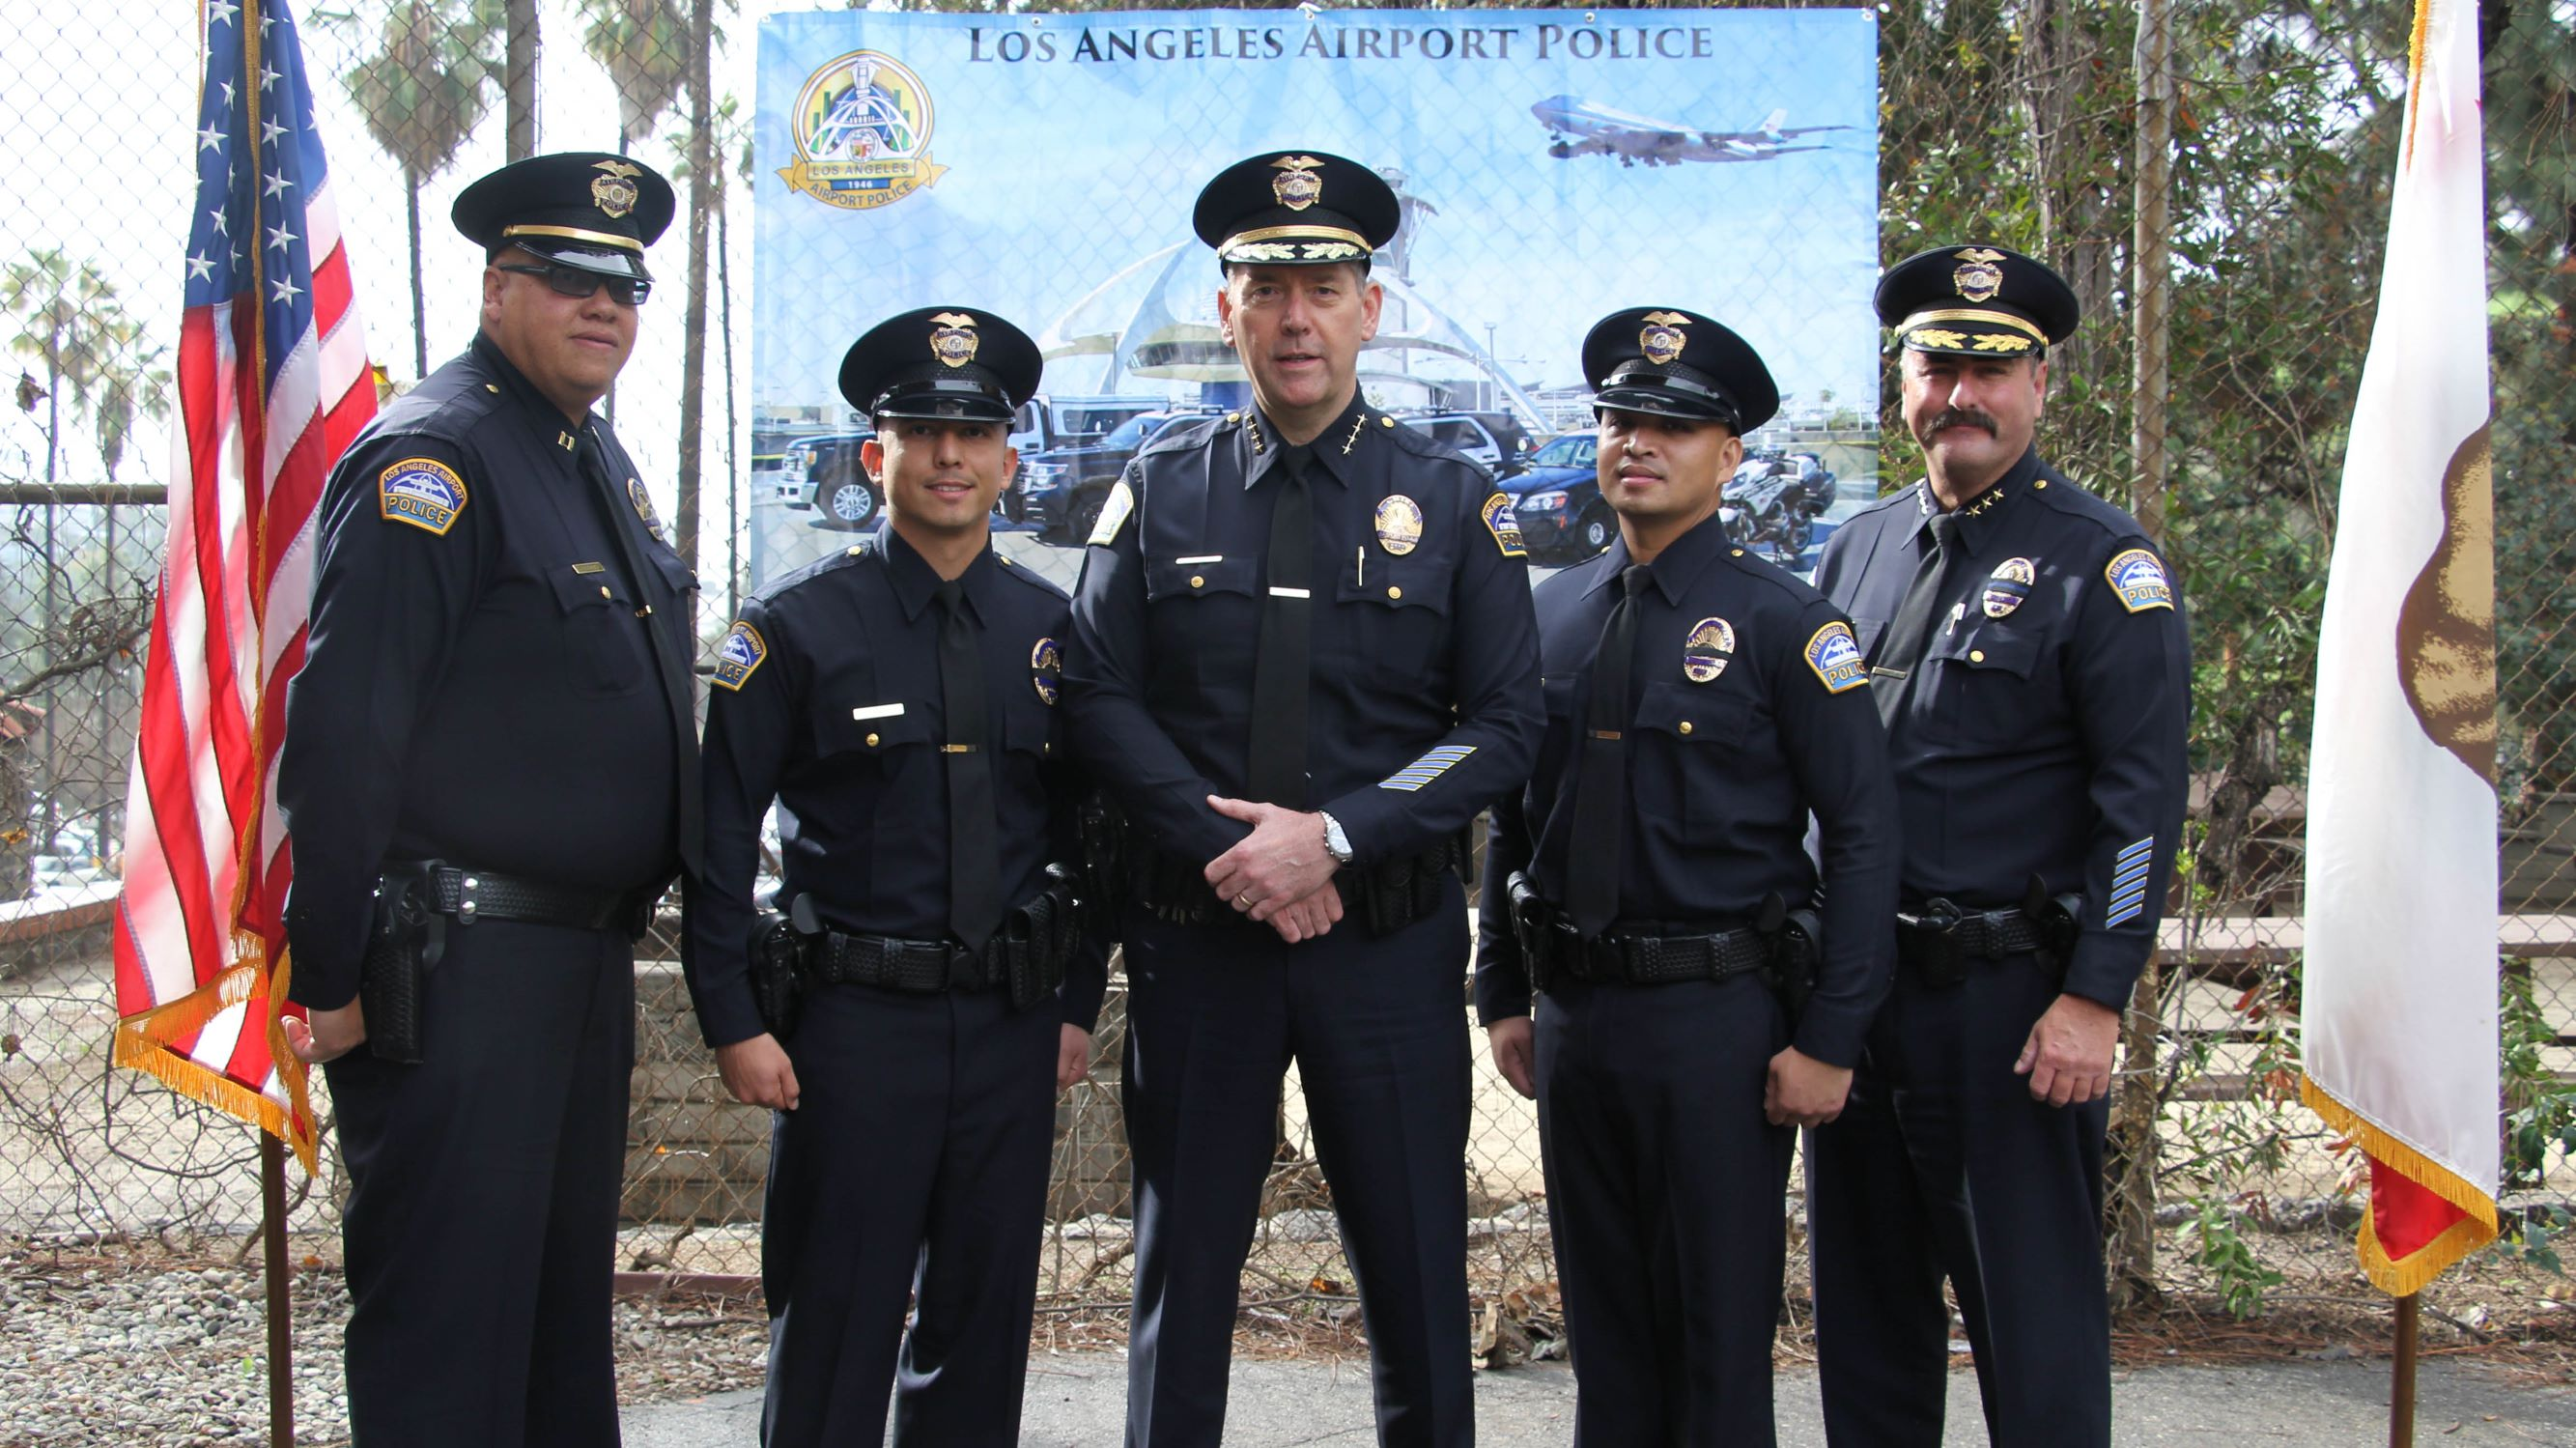 Sworn Officers